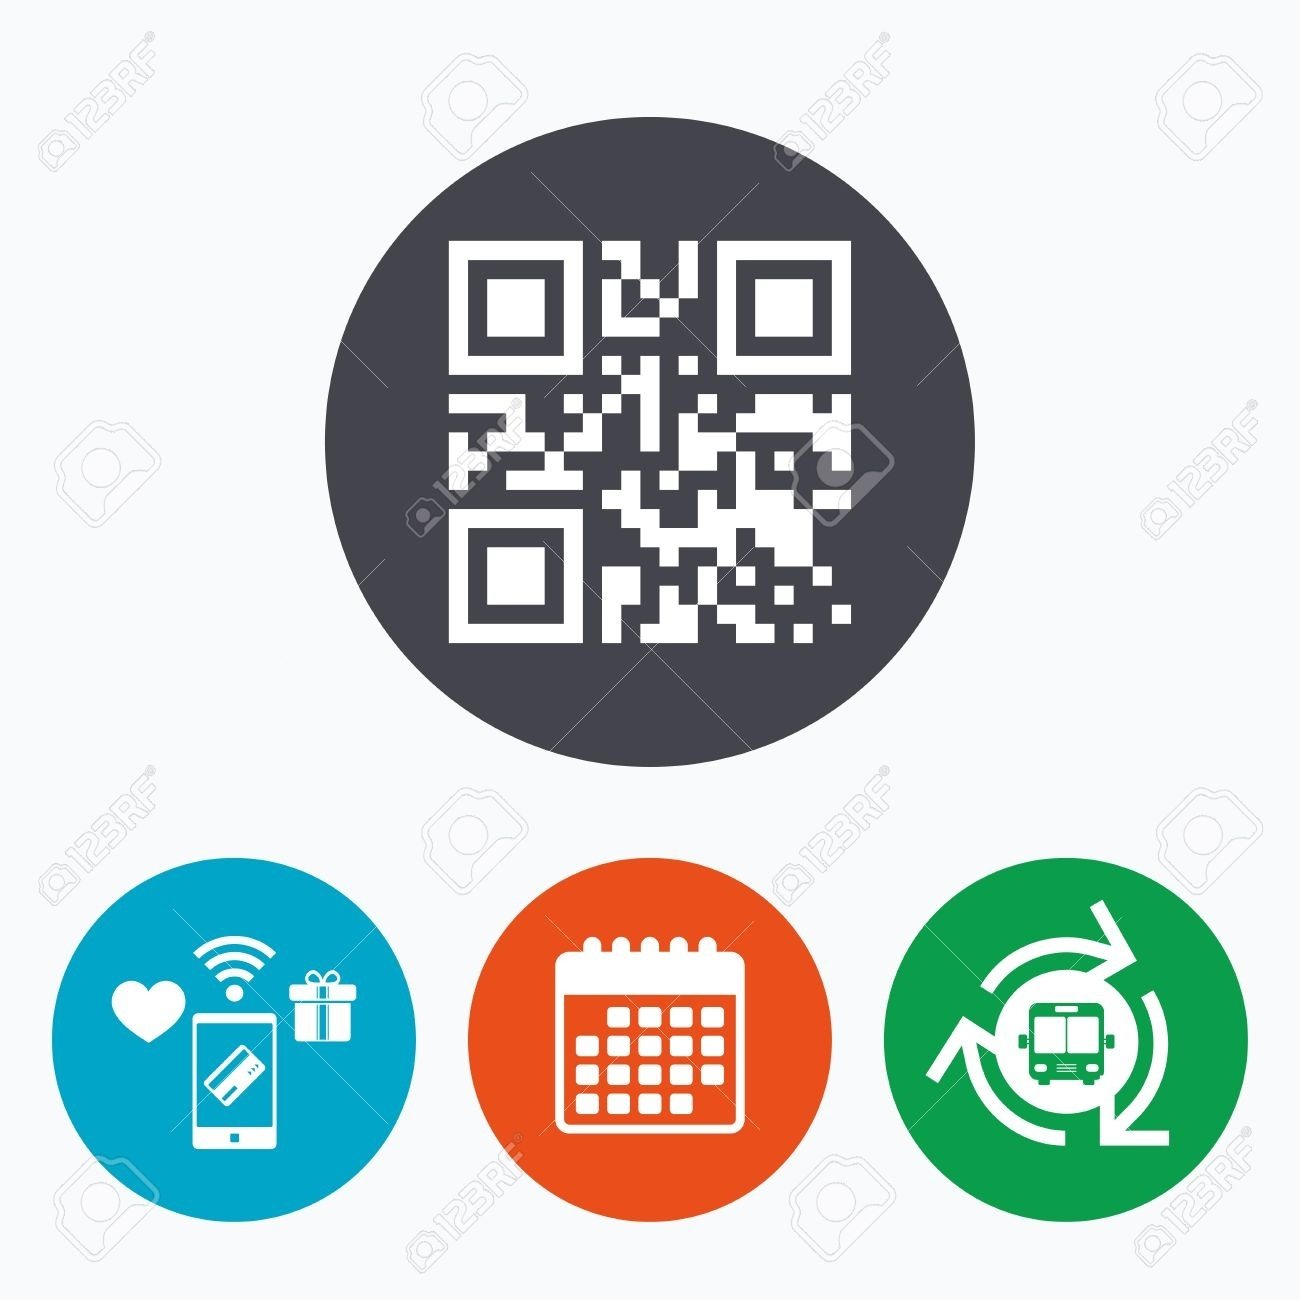 Qr Code Sign Icon. Scan Code Symbol. Coded Word - Success! Mobile.._Calendar Icon In Word